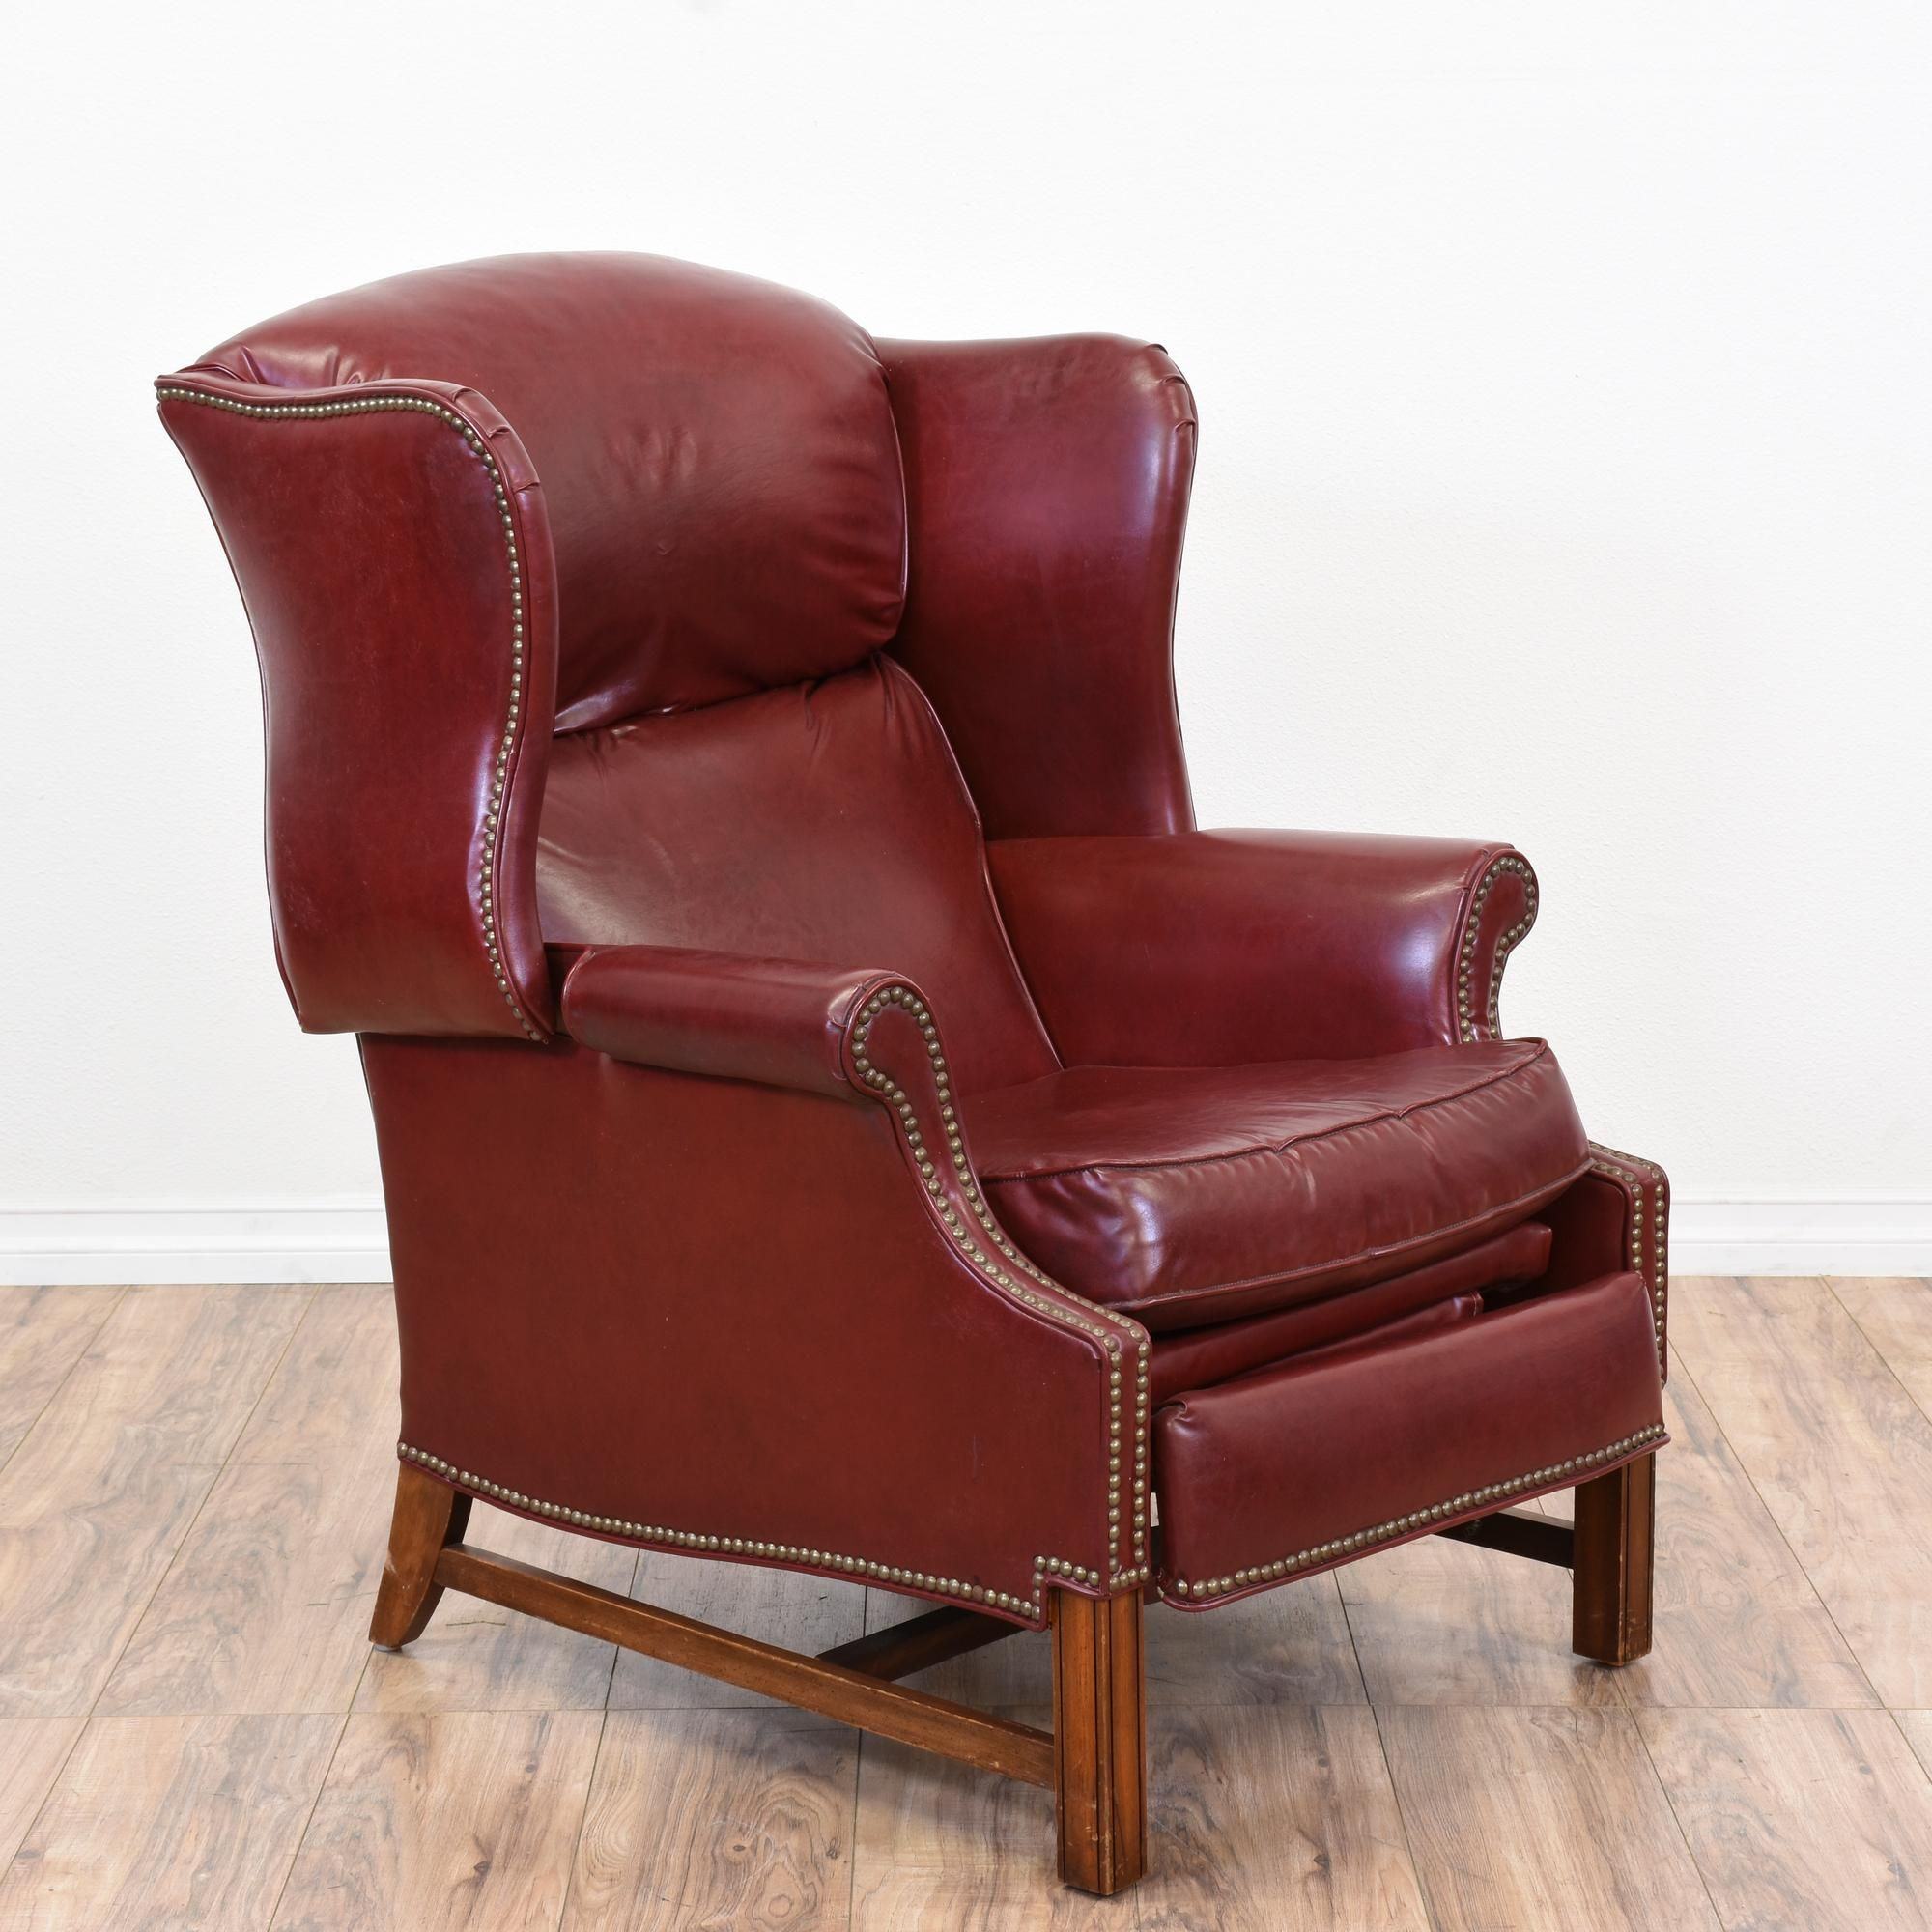 This Armchair Is In Great Condition With A Tall Reclining